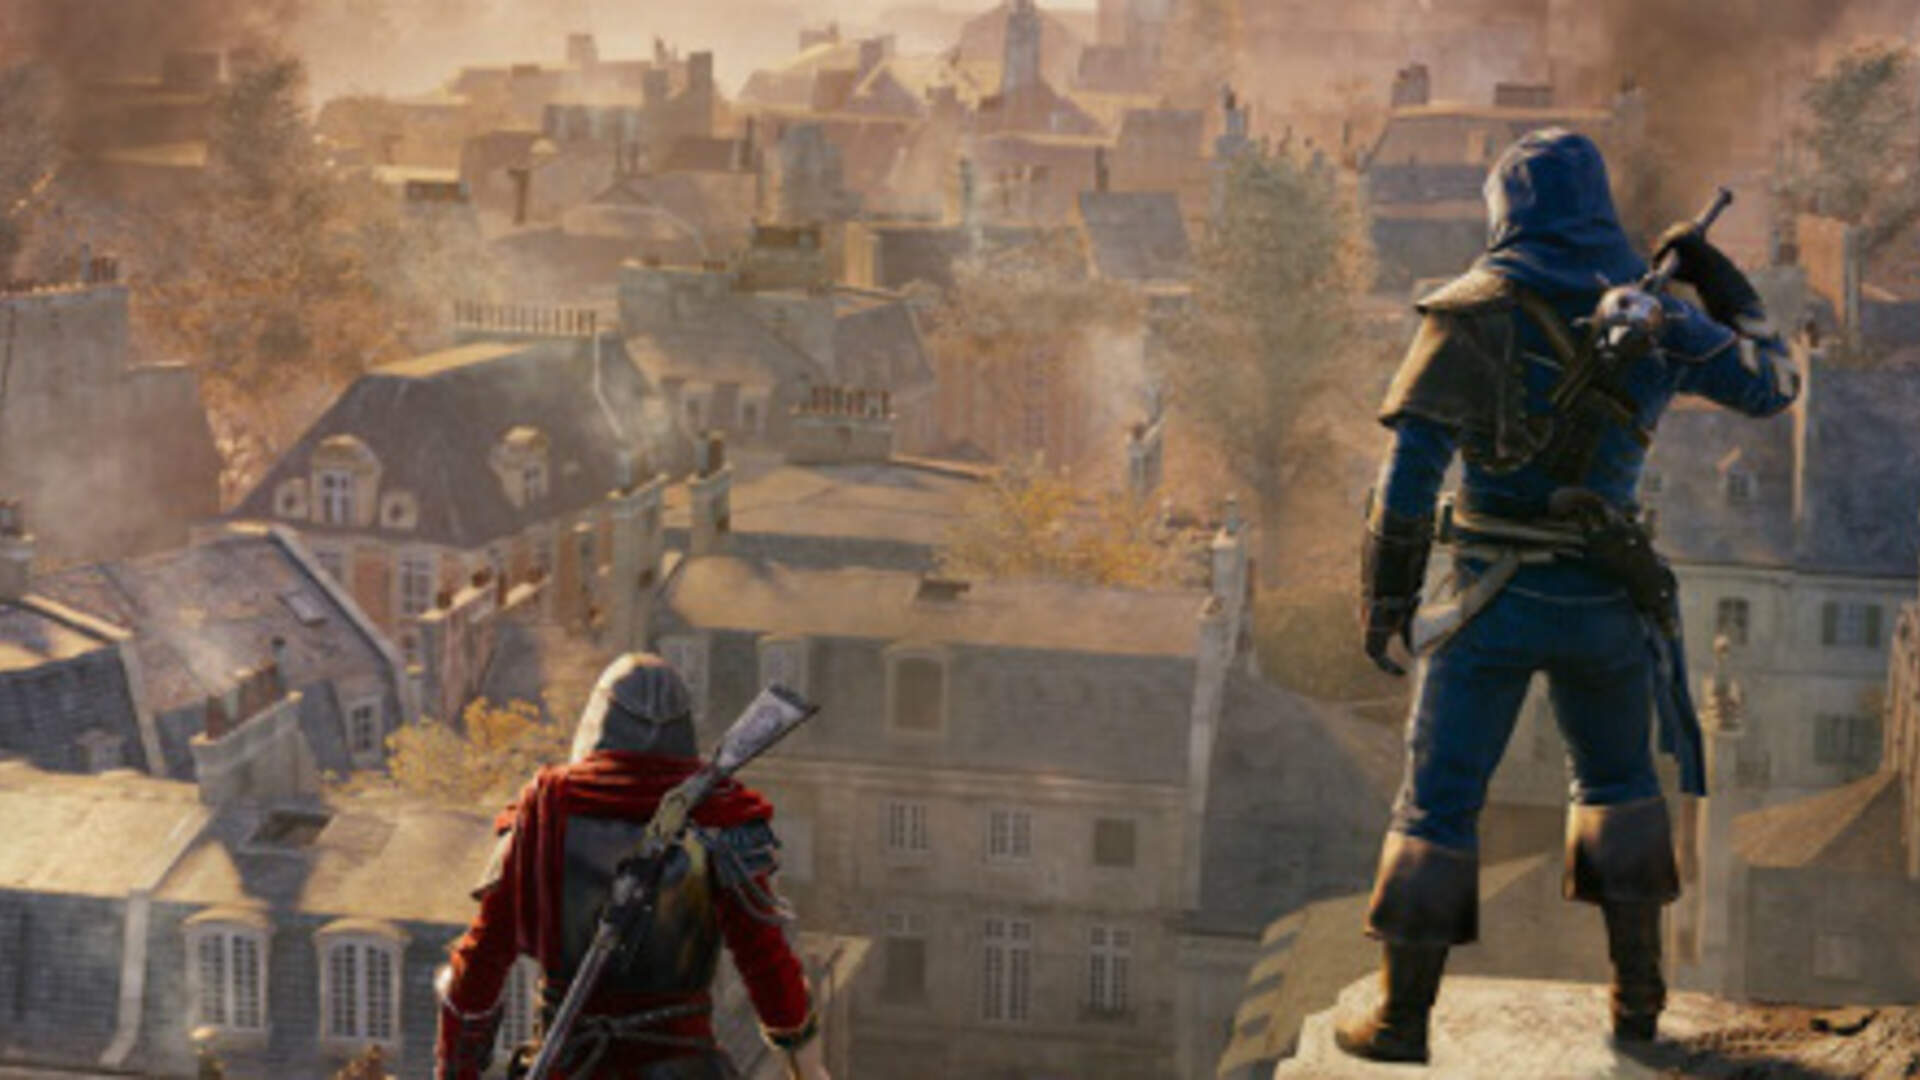 USstreamer Tuesday: Exploring Paris in Assassin's Creed Unity at 2:30pm PT/5:30pm ET